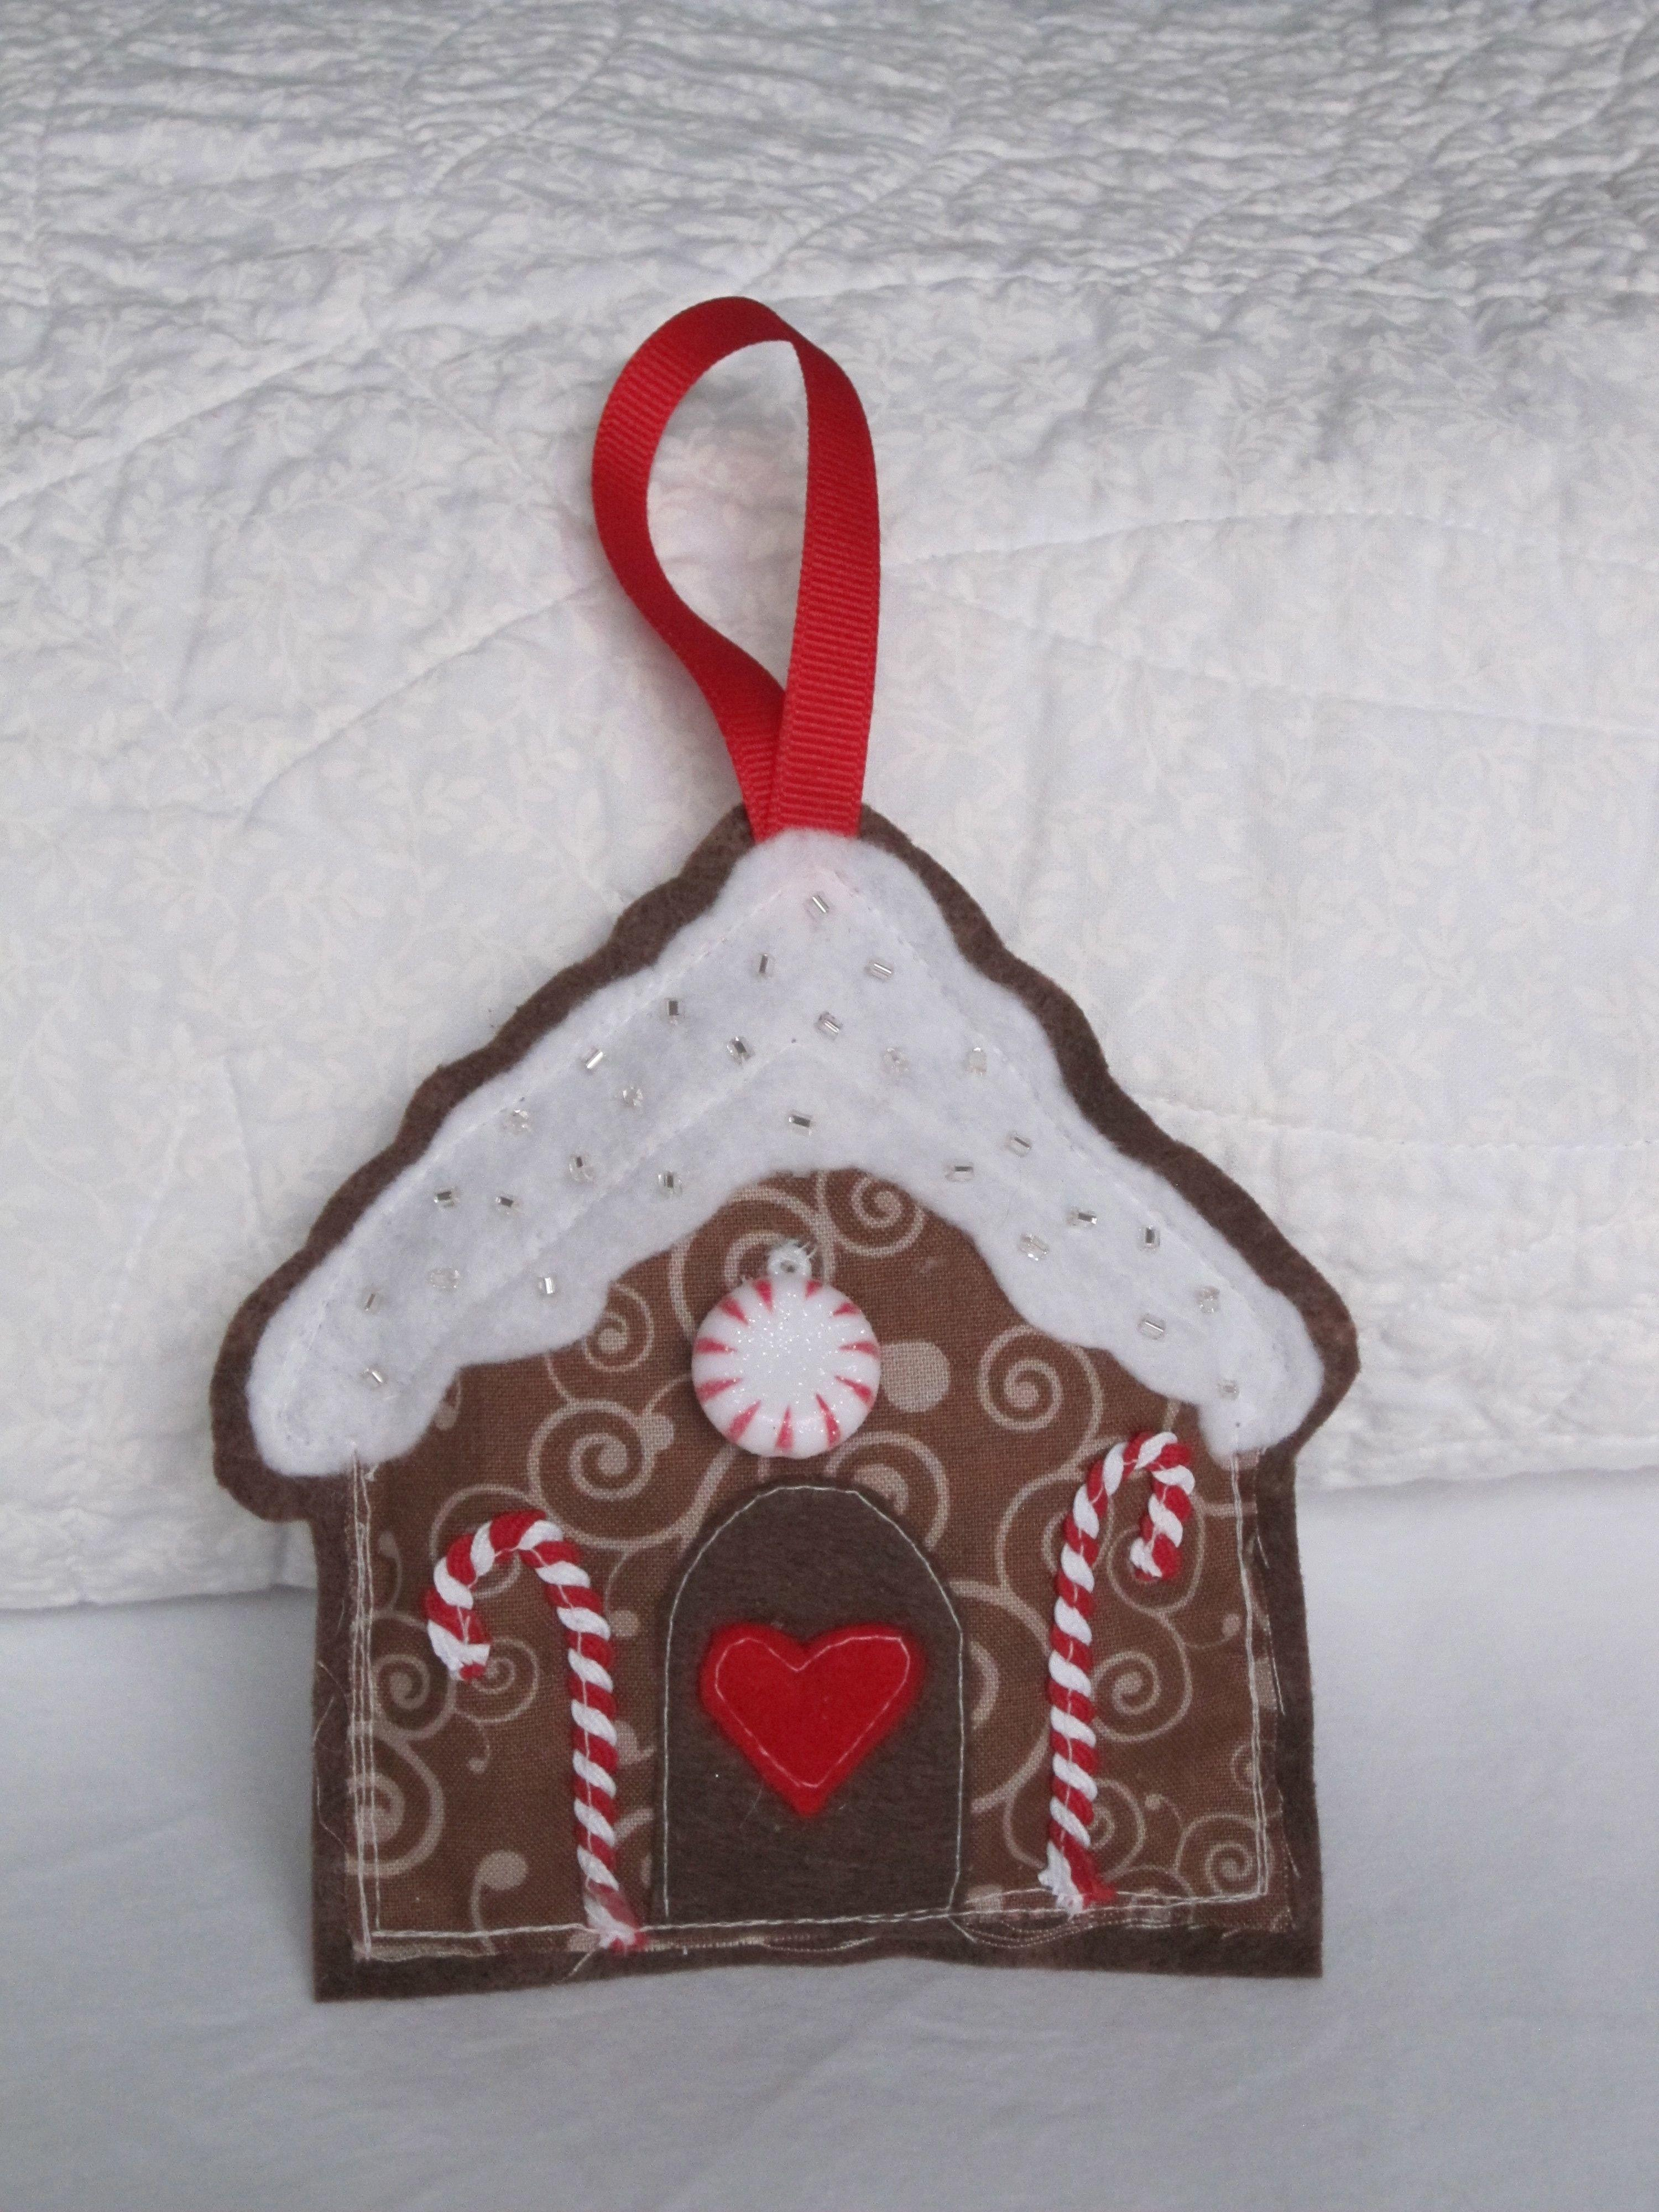 Gingerbread House Ornaments Montano